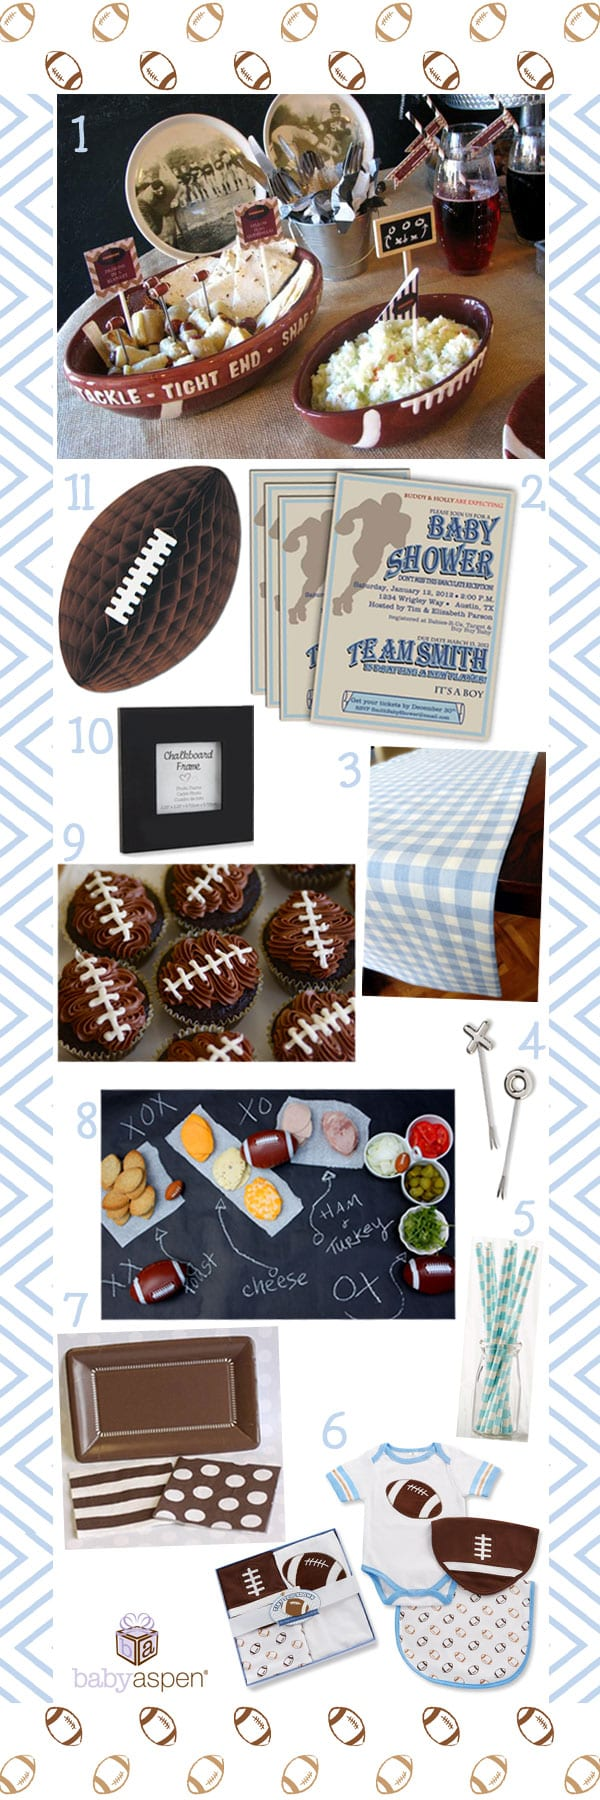 Blue and Brown Vintage Football Baby Shower Theme | Football Themed Snacks | Baby Boy | Baby Shower | Baby Football Outfit | Baby Aspen